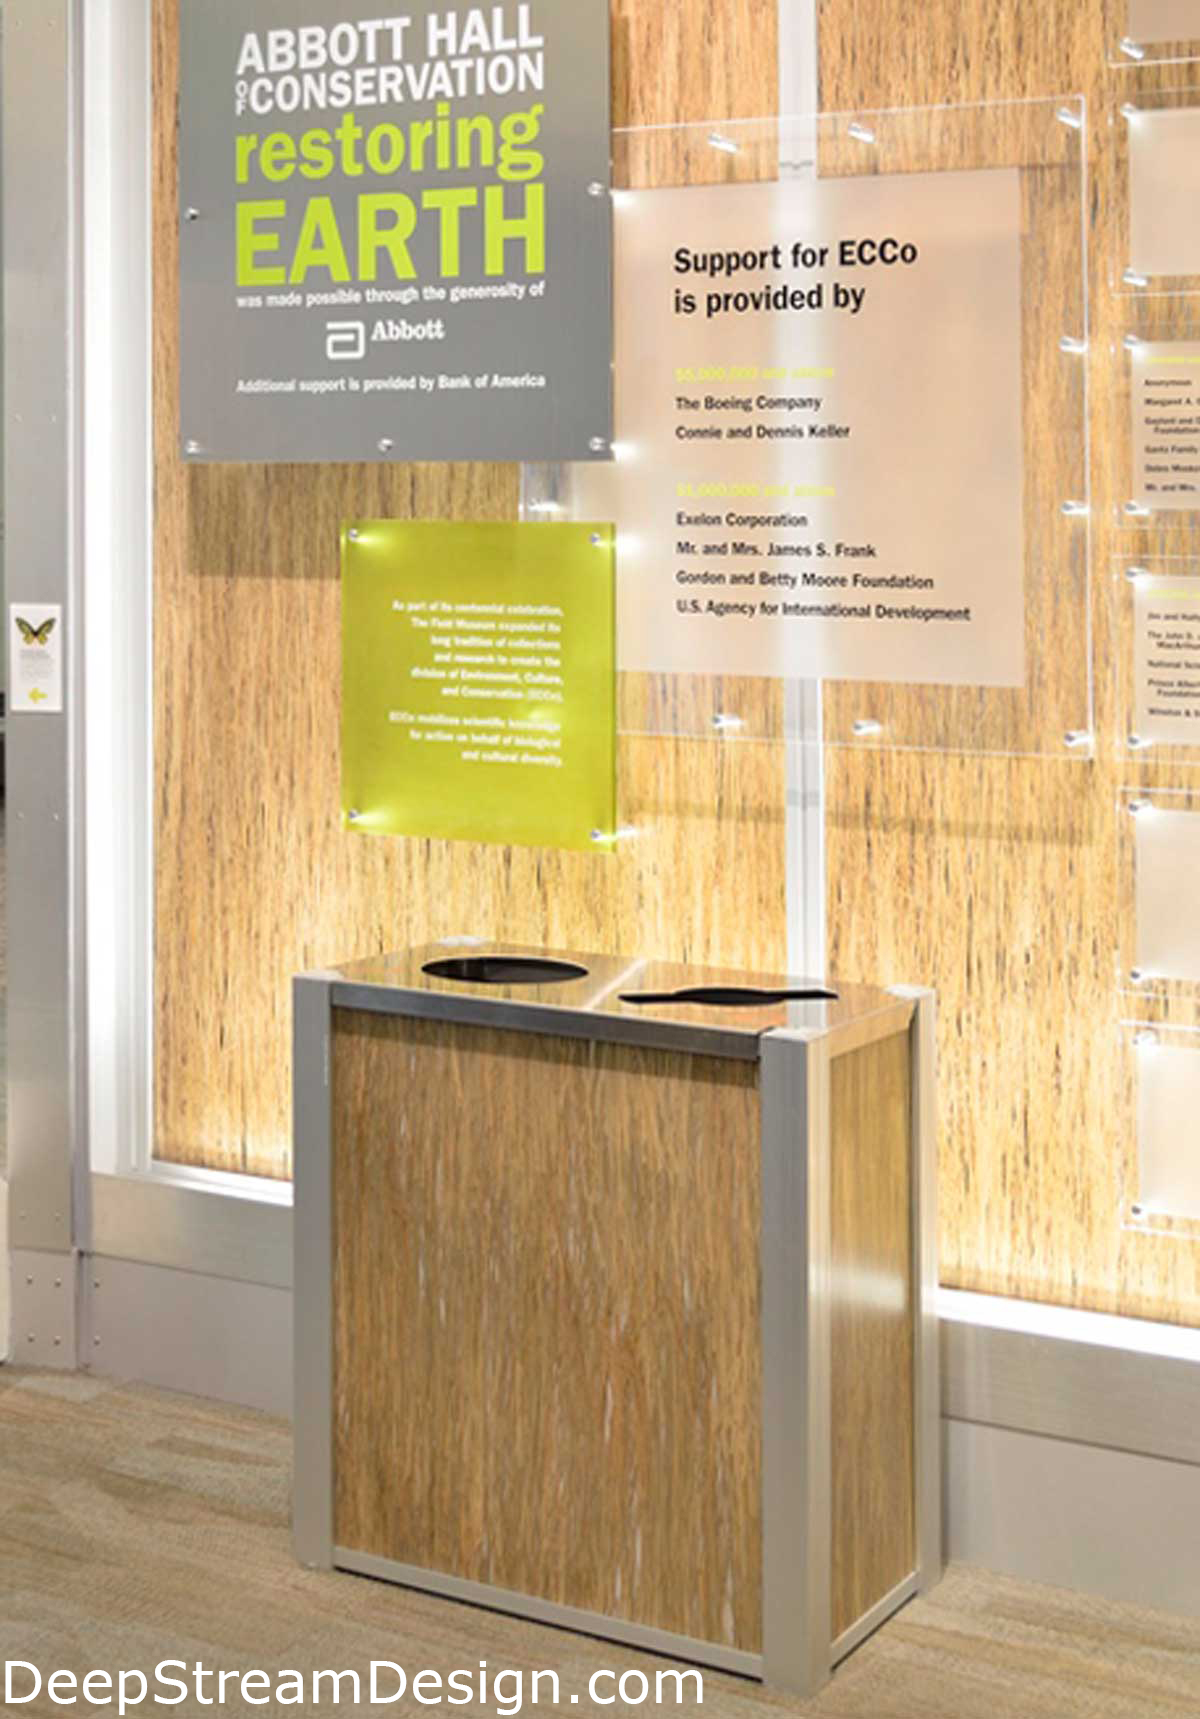 DeepStream Audubon Combination Recycling and Trash Receptacle with 3form Eco-resin Panels at Chicago's Field Museum